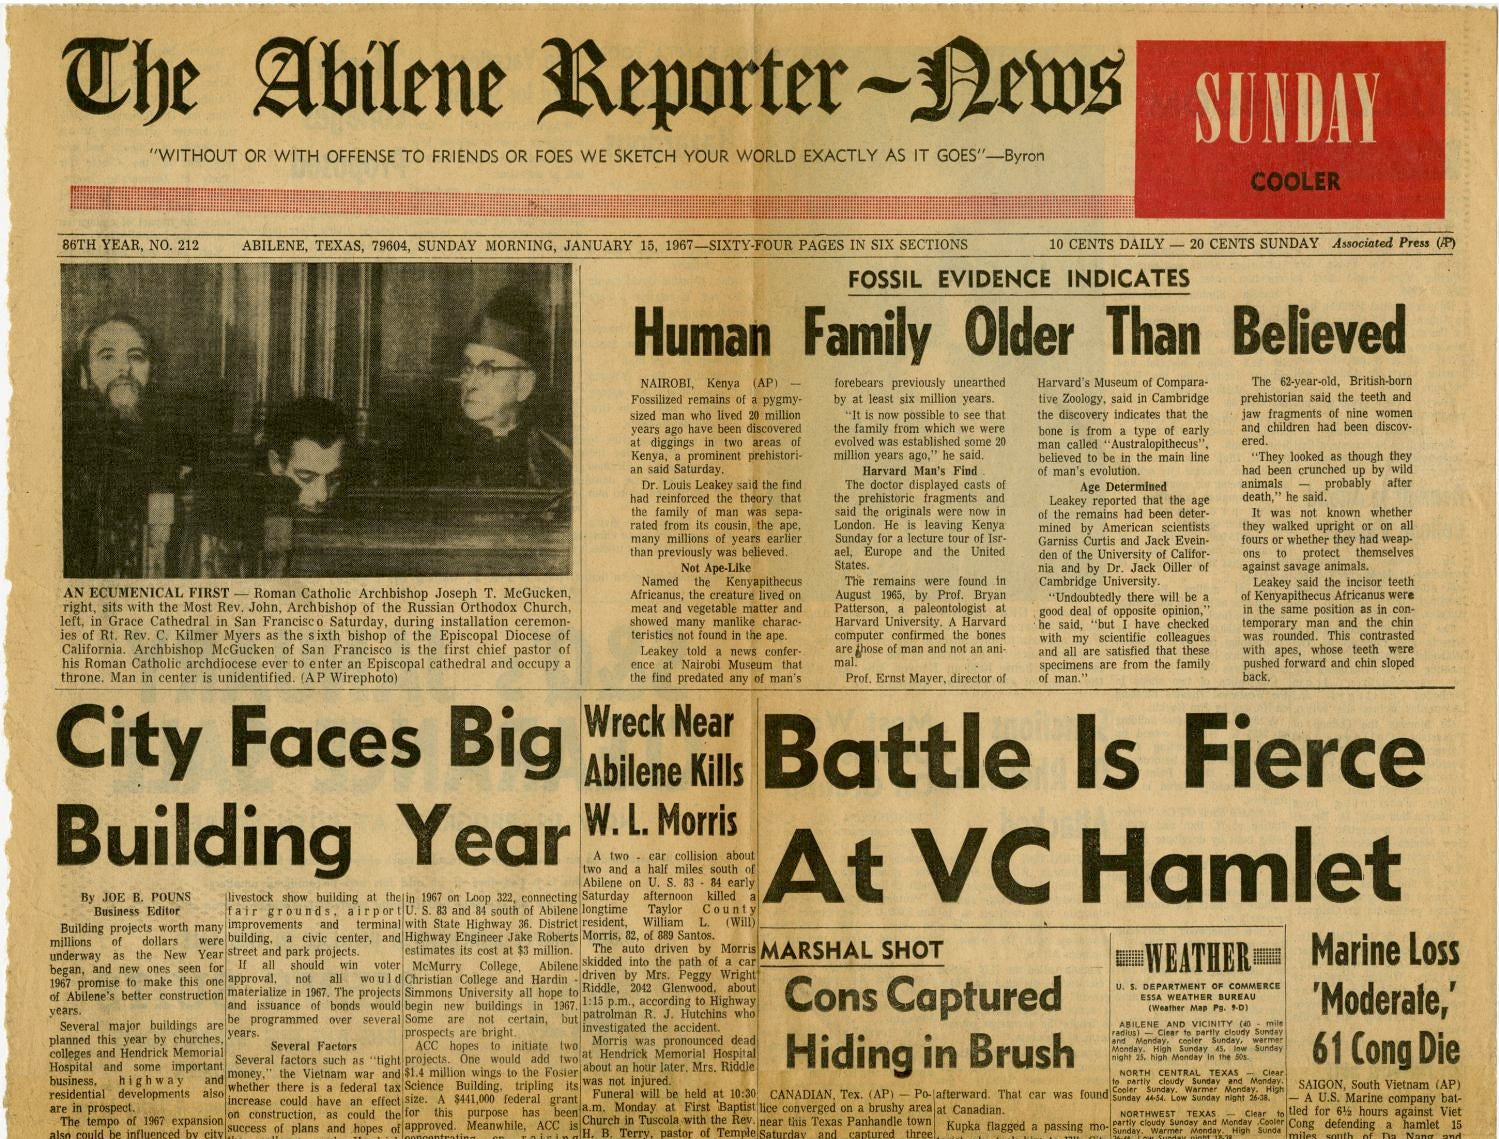 Historical front page of the Abilene Reporter-News.